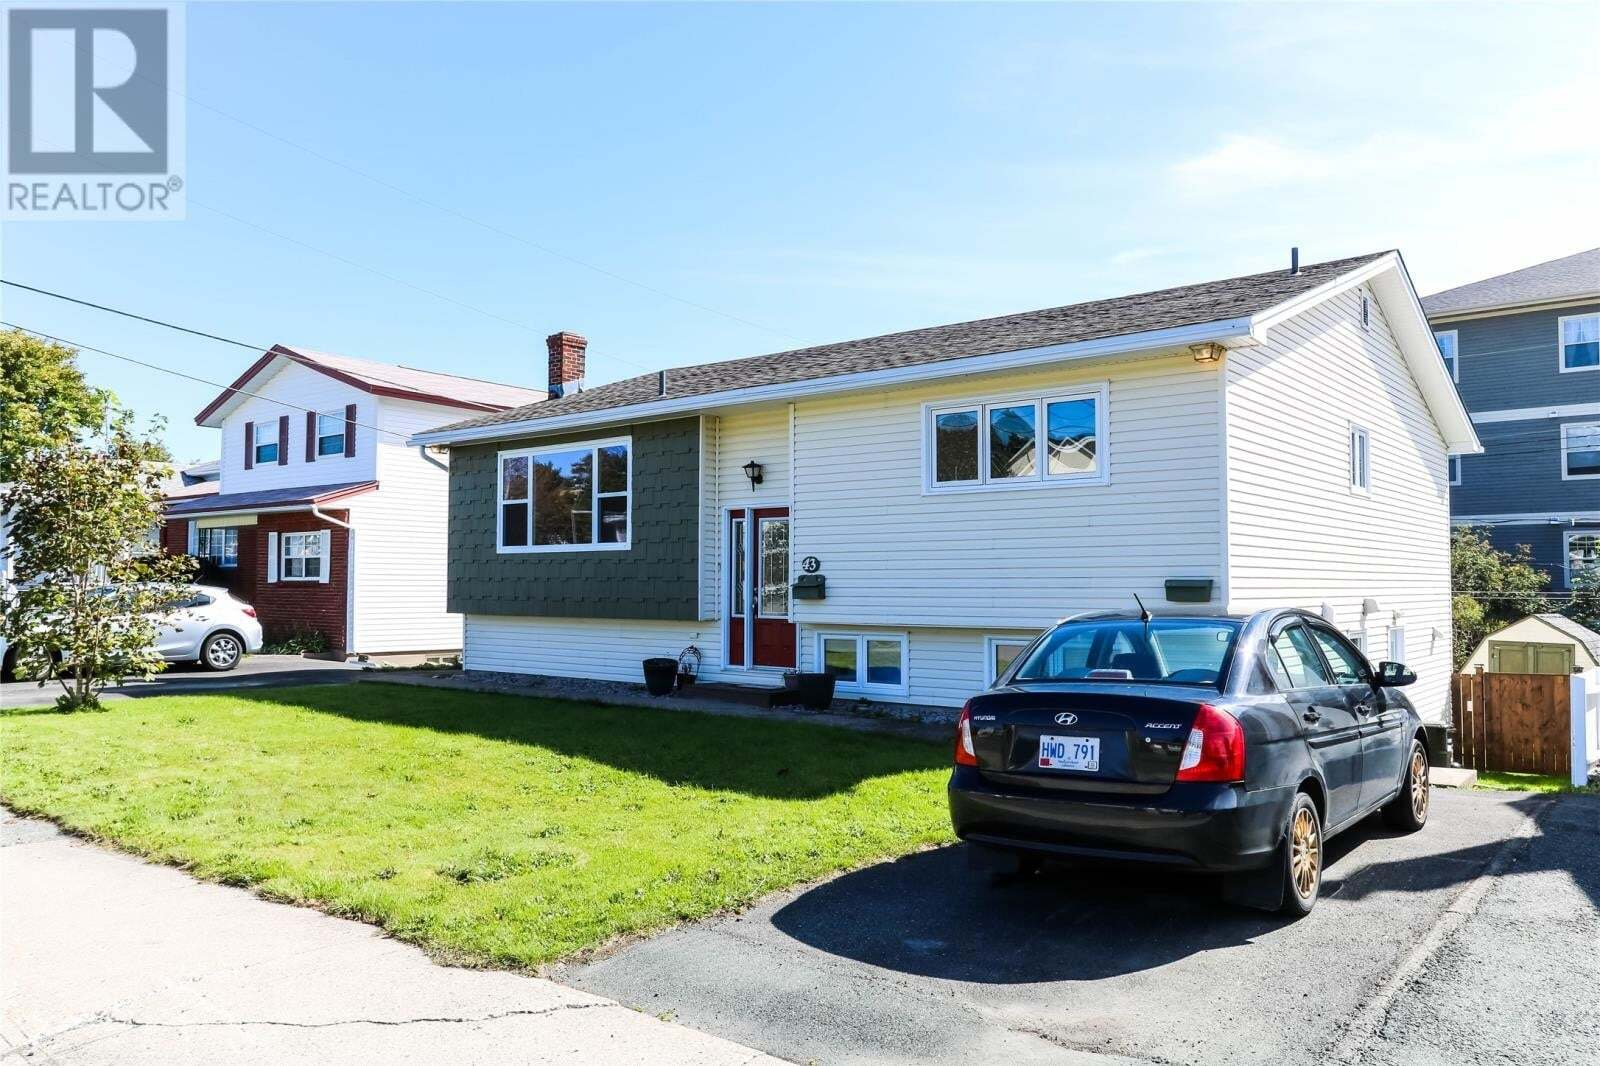 House for sale at 43 Ferryland St East St. John's Newfoundland - MLS: 1221578